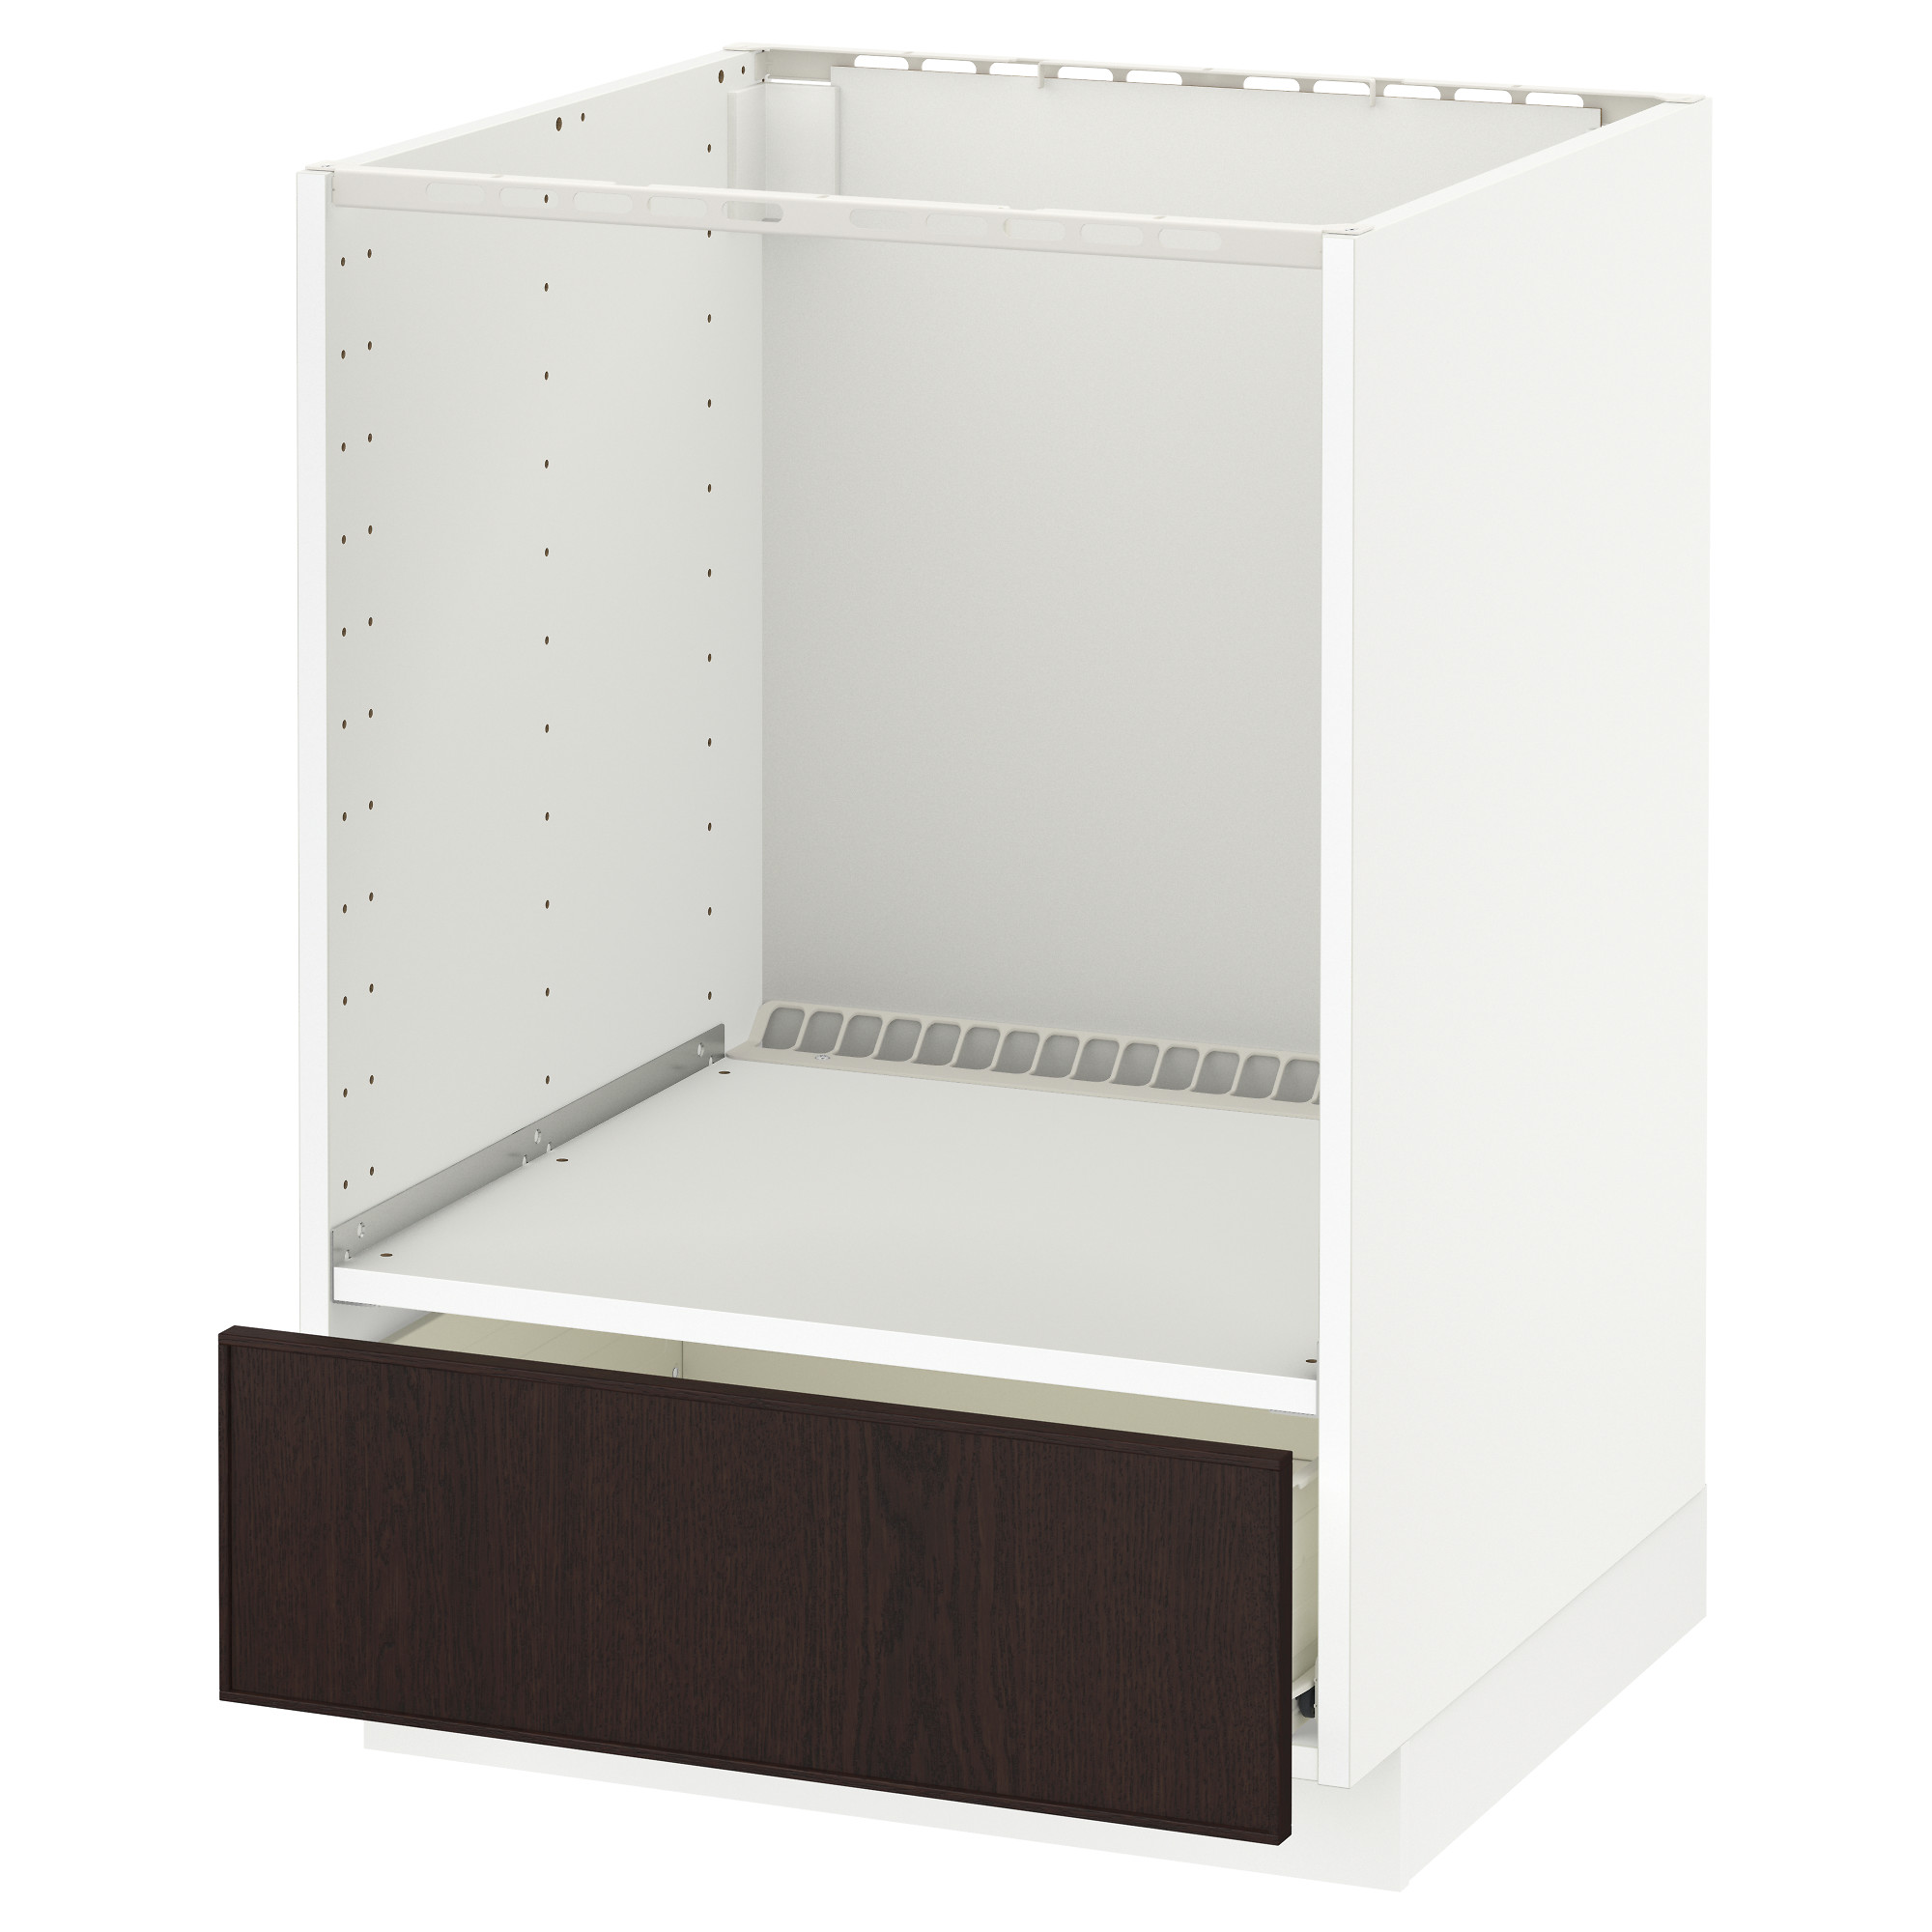 METOD Base cabinet for oven with drawer - Fö, Ekestad brown - IKEA